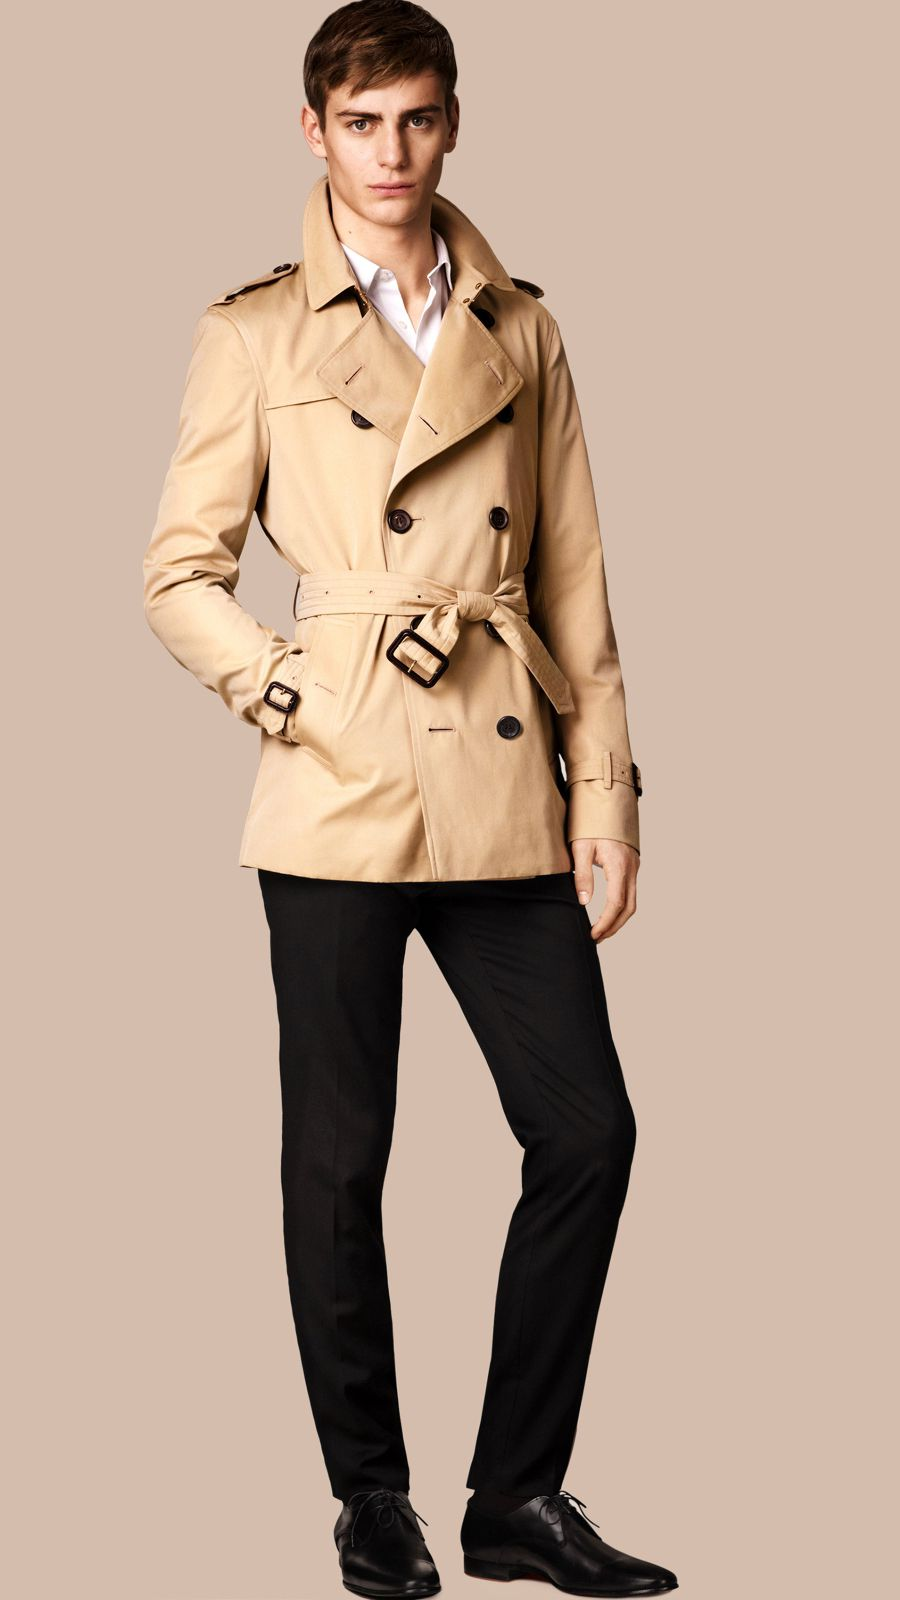 TrenchBurberryImperméable Men's court The Heritage The 5R4ALjq3